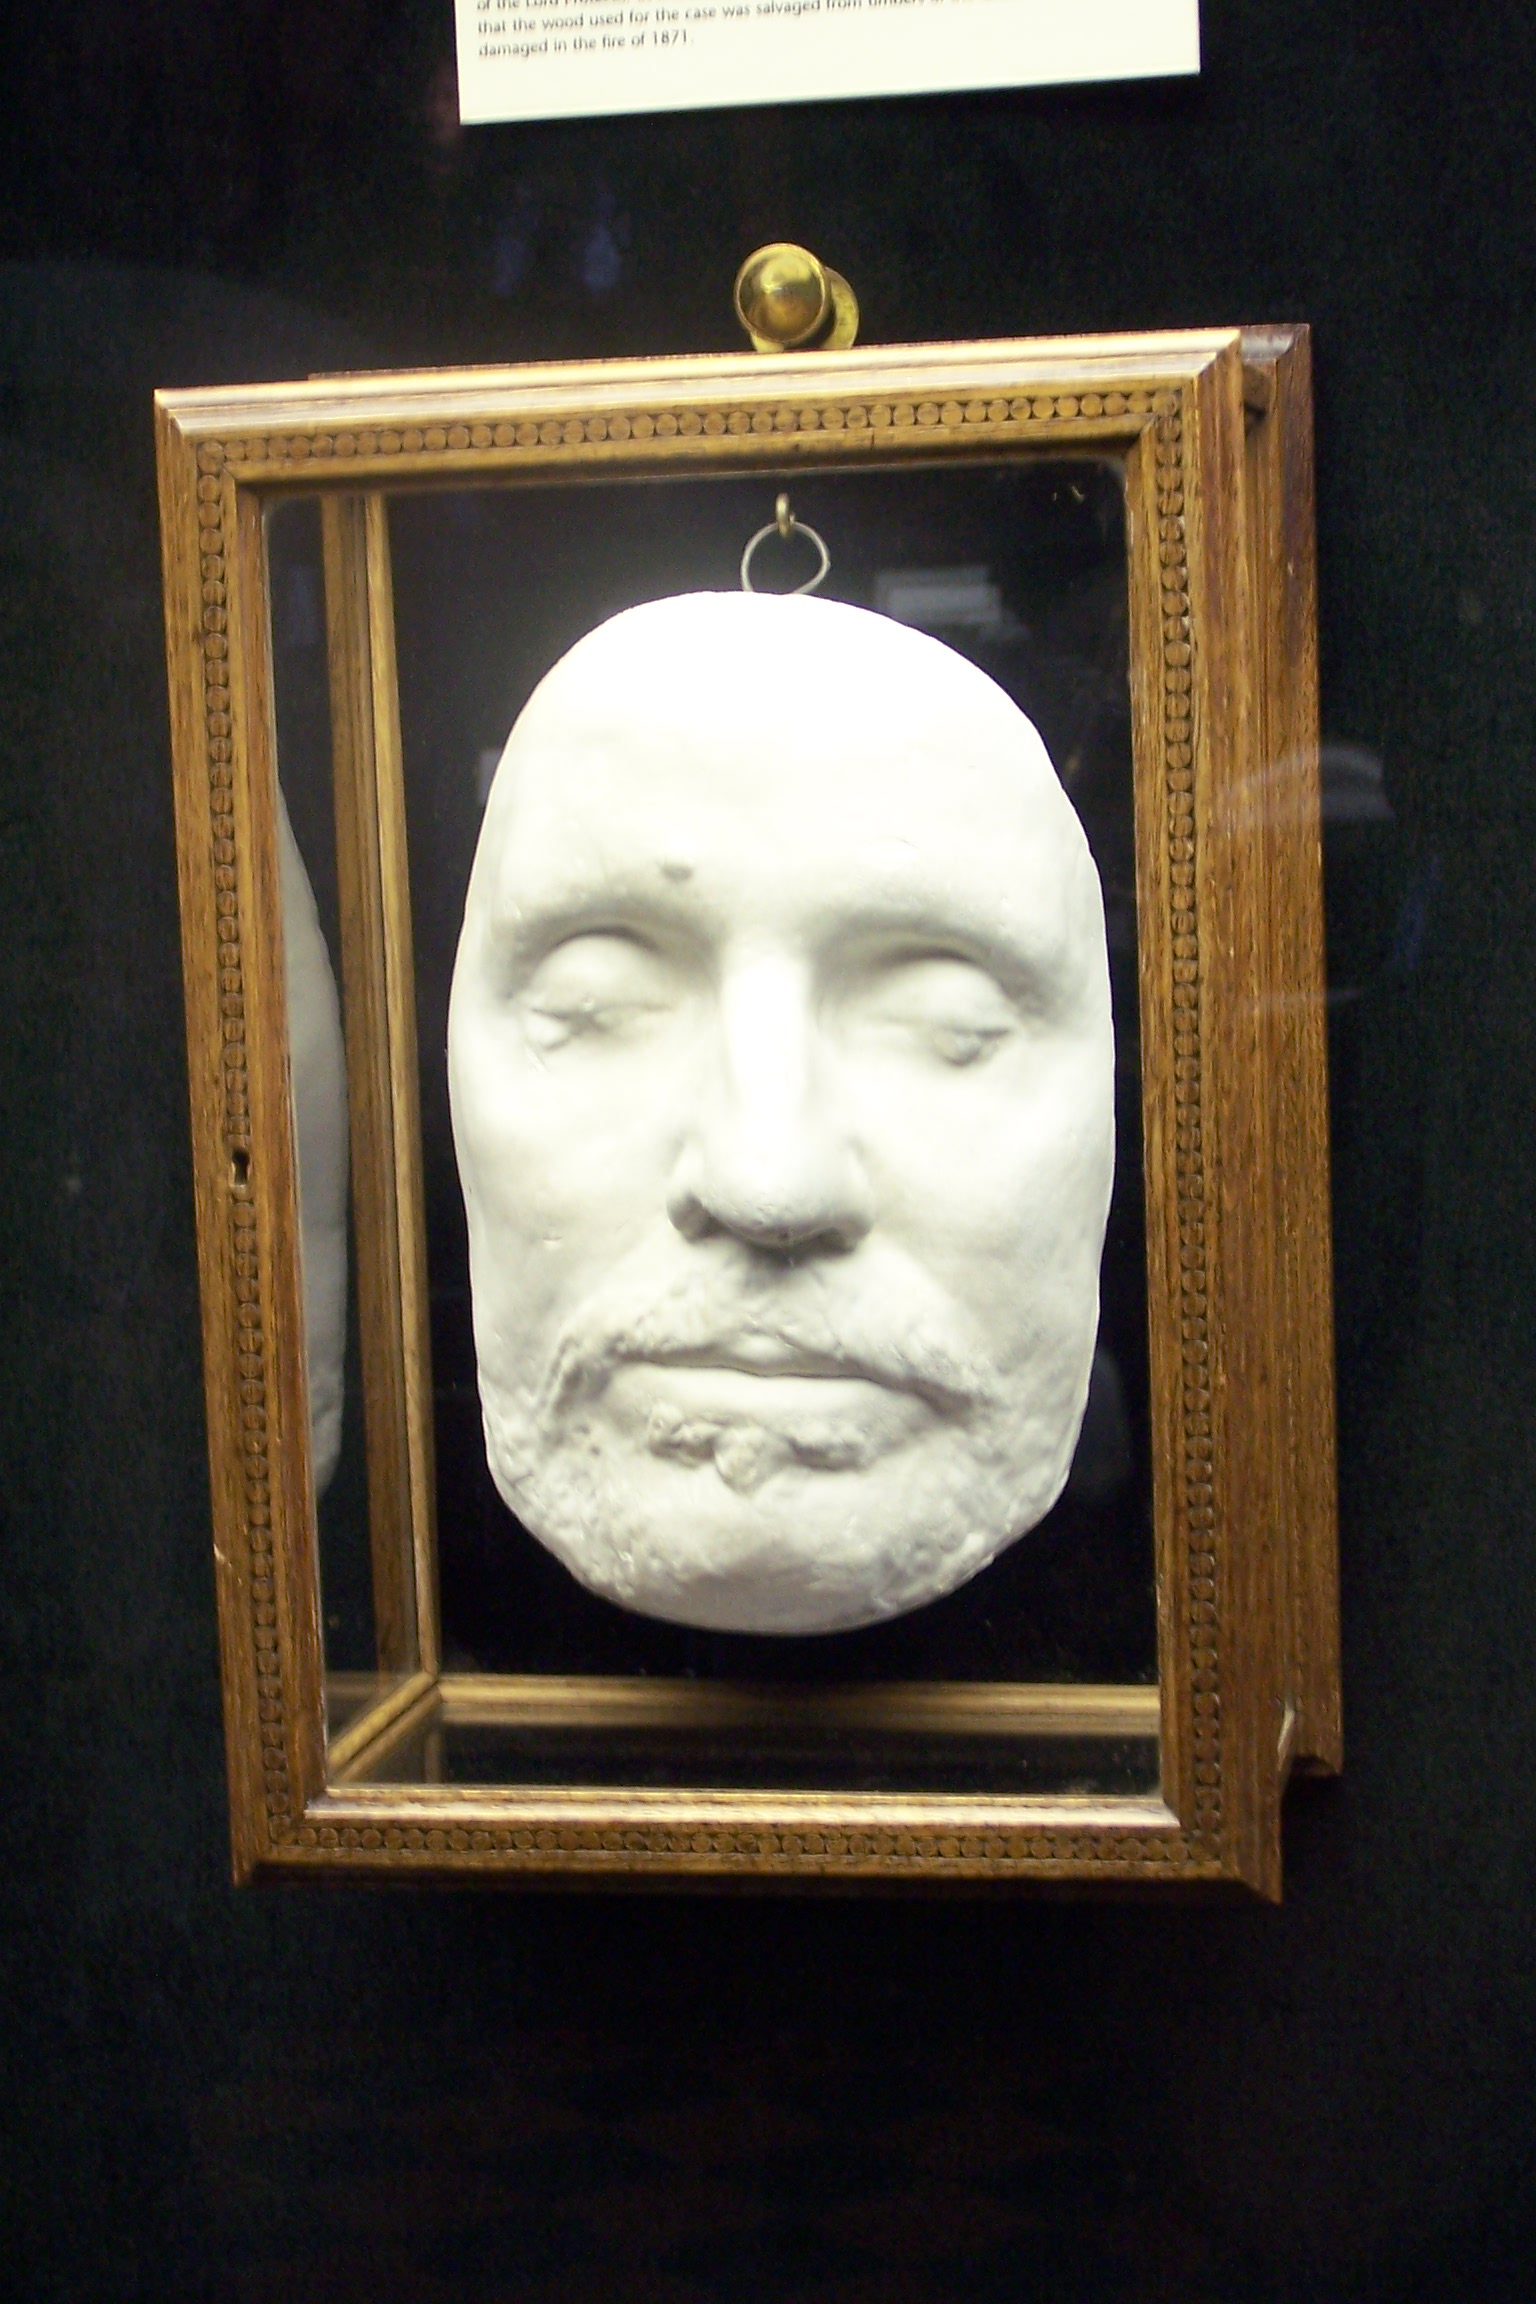 The death mask of Oliver Cromwell